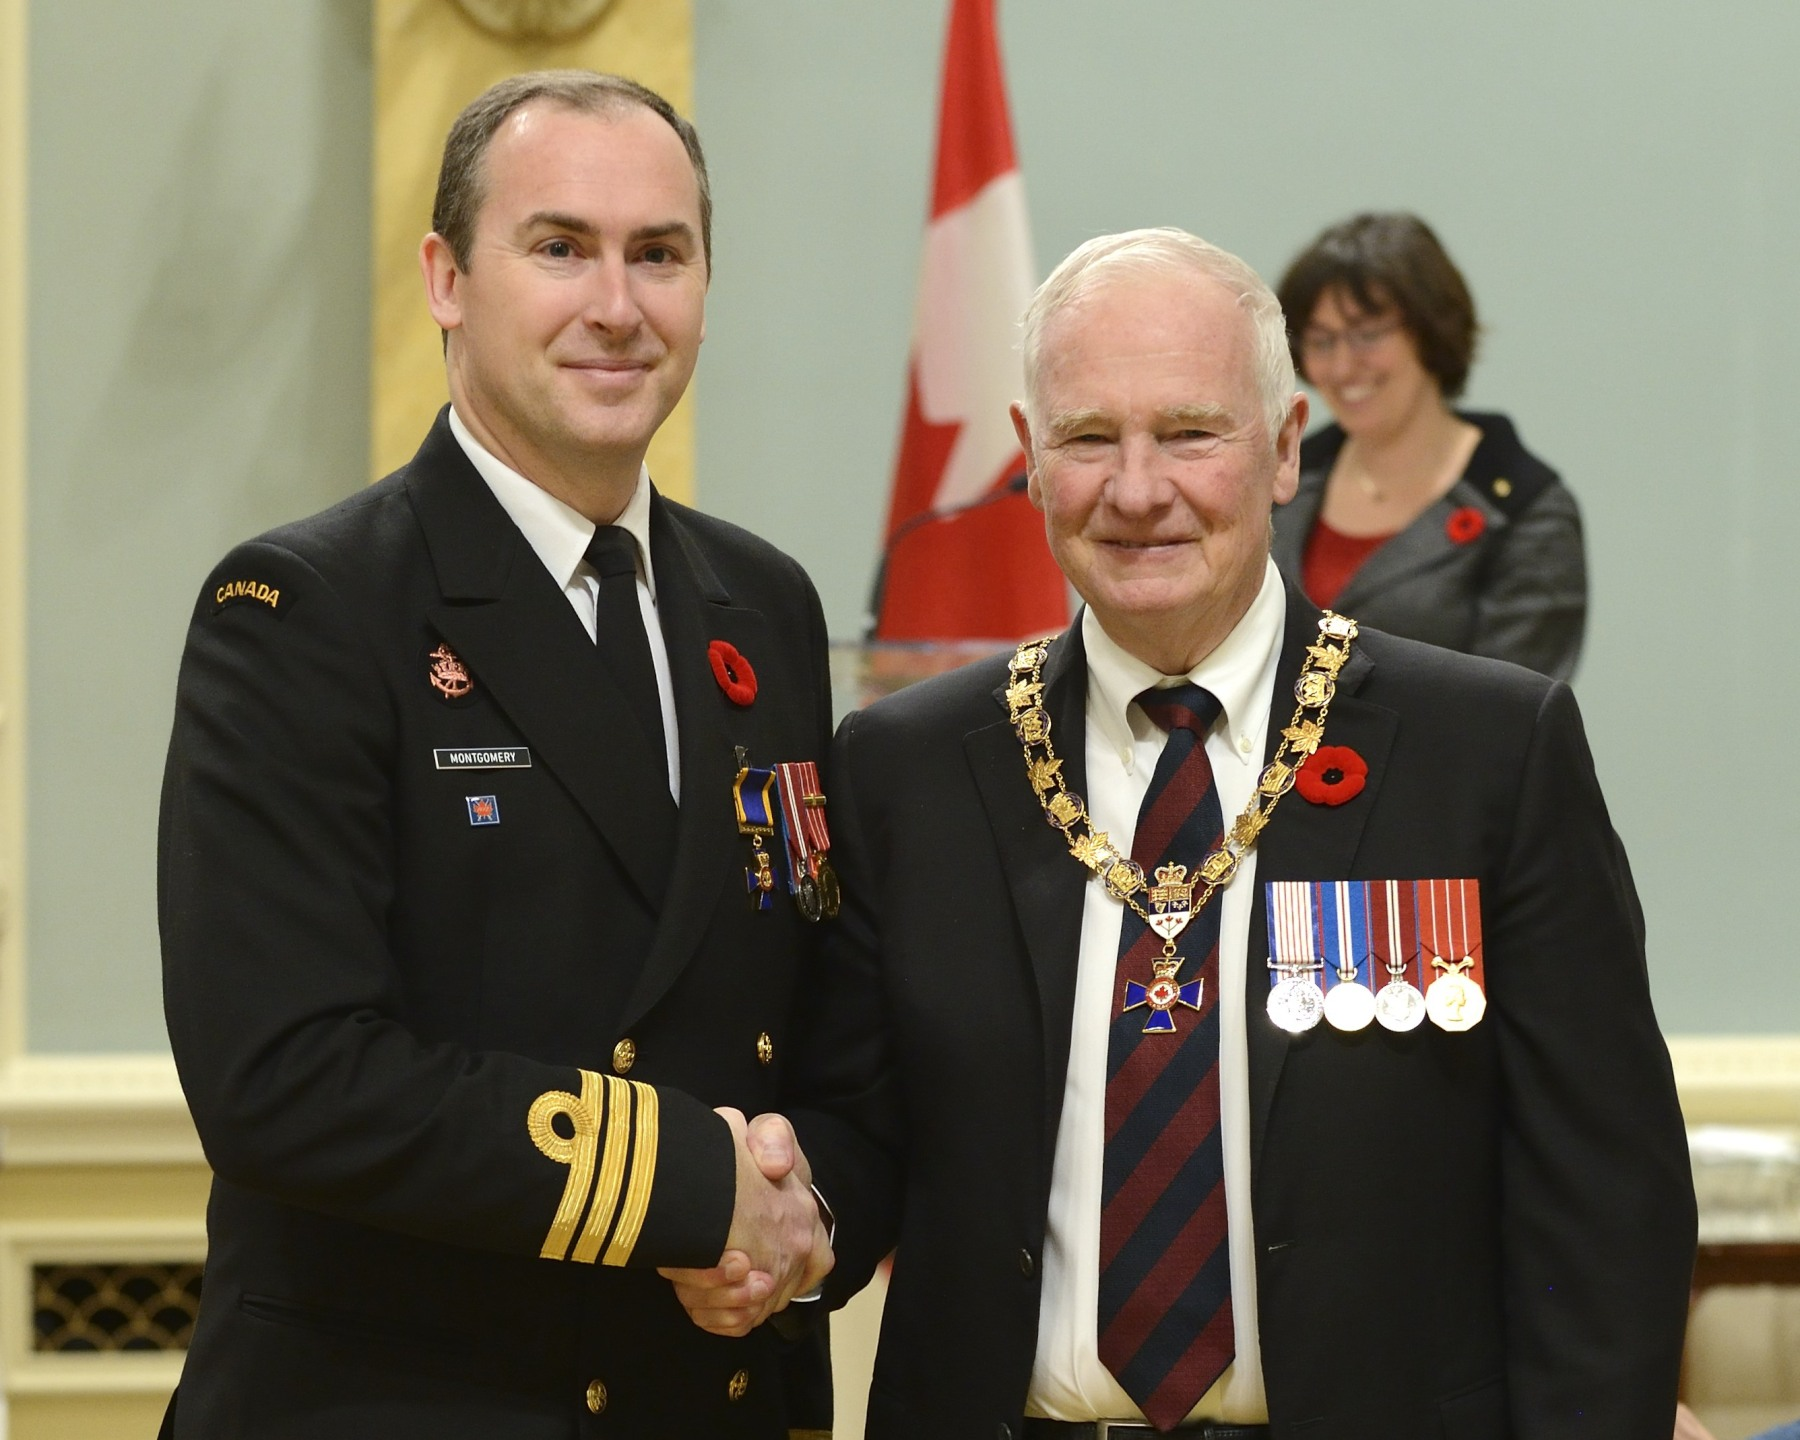 His Excellency presented the Order of Military Merit at the Officer level (O.M.M.) to Commander Patrick Montgomery, O.M.M., C.D., Canadian Fleet Pacific Headquarters, Victoria, British Columbia.